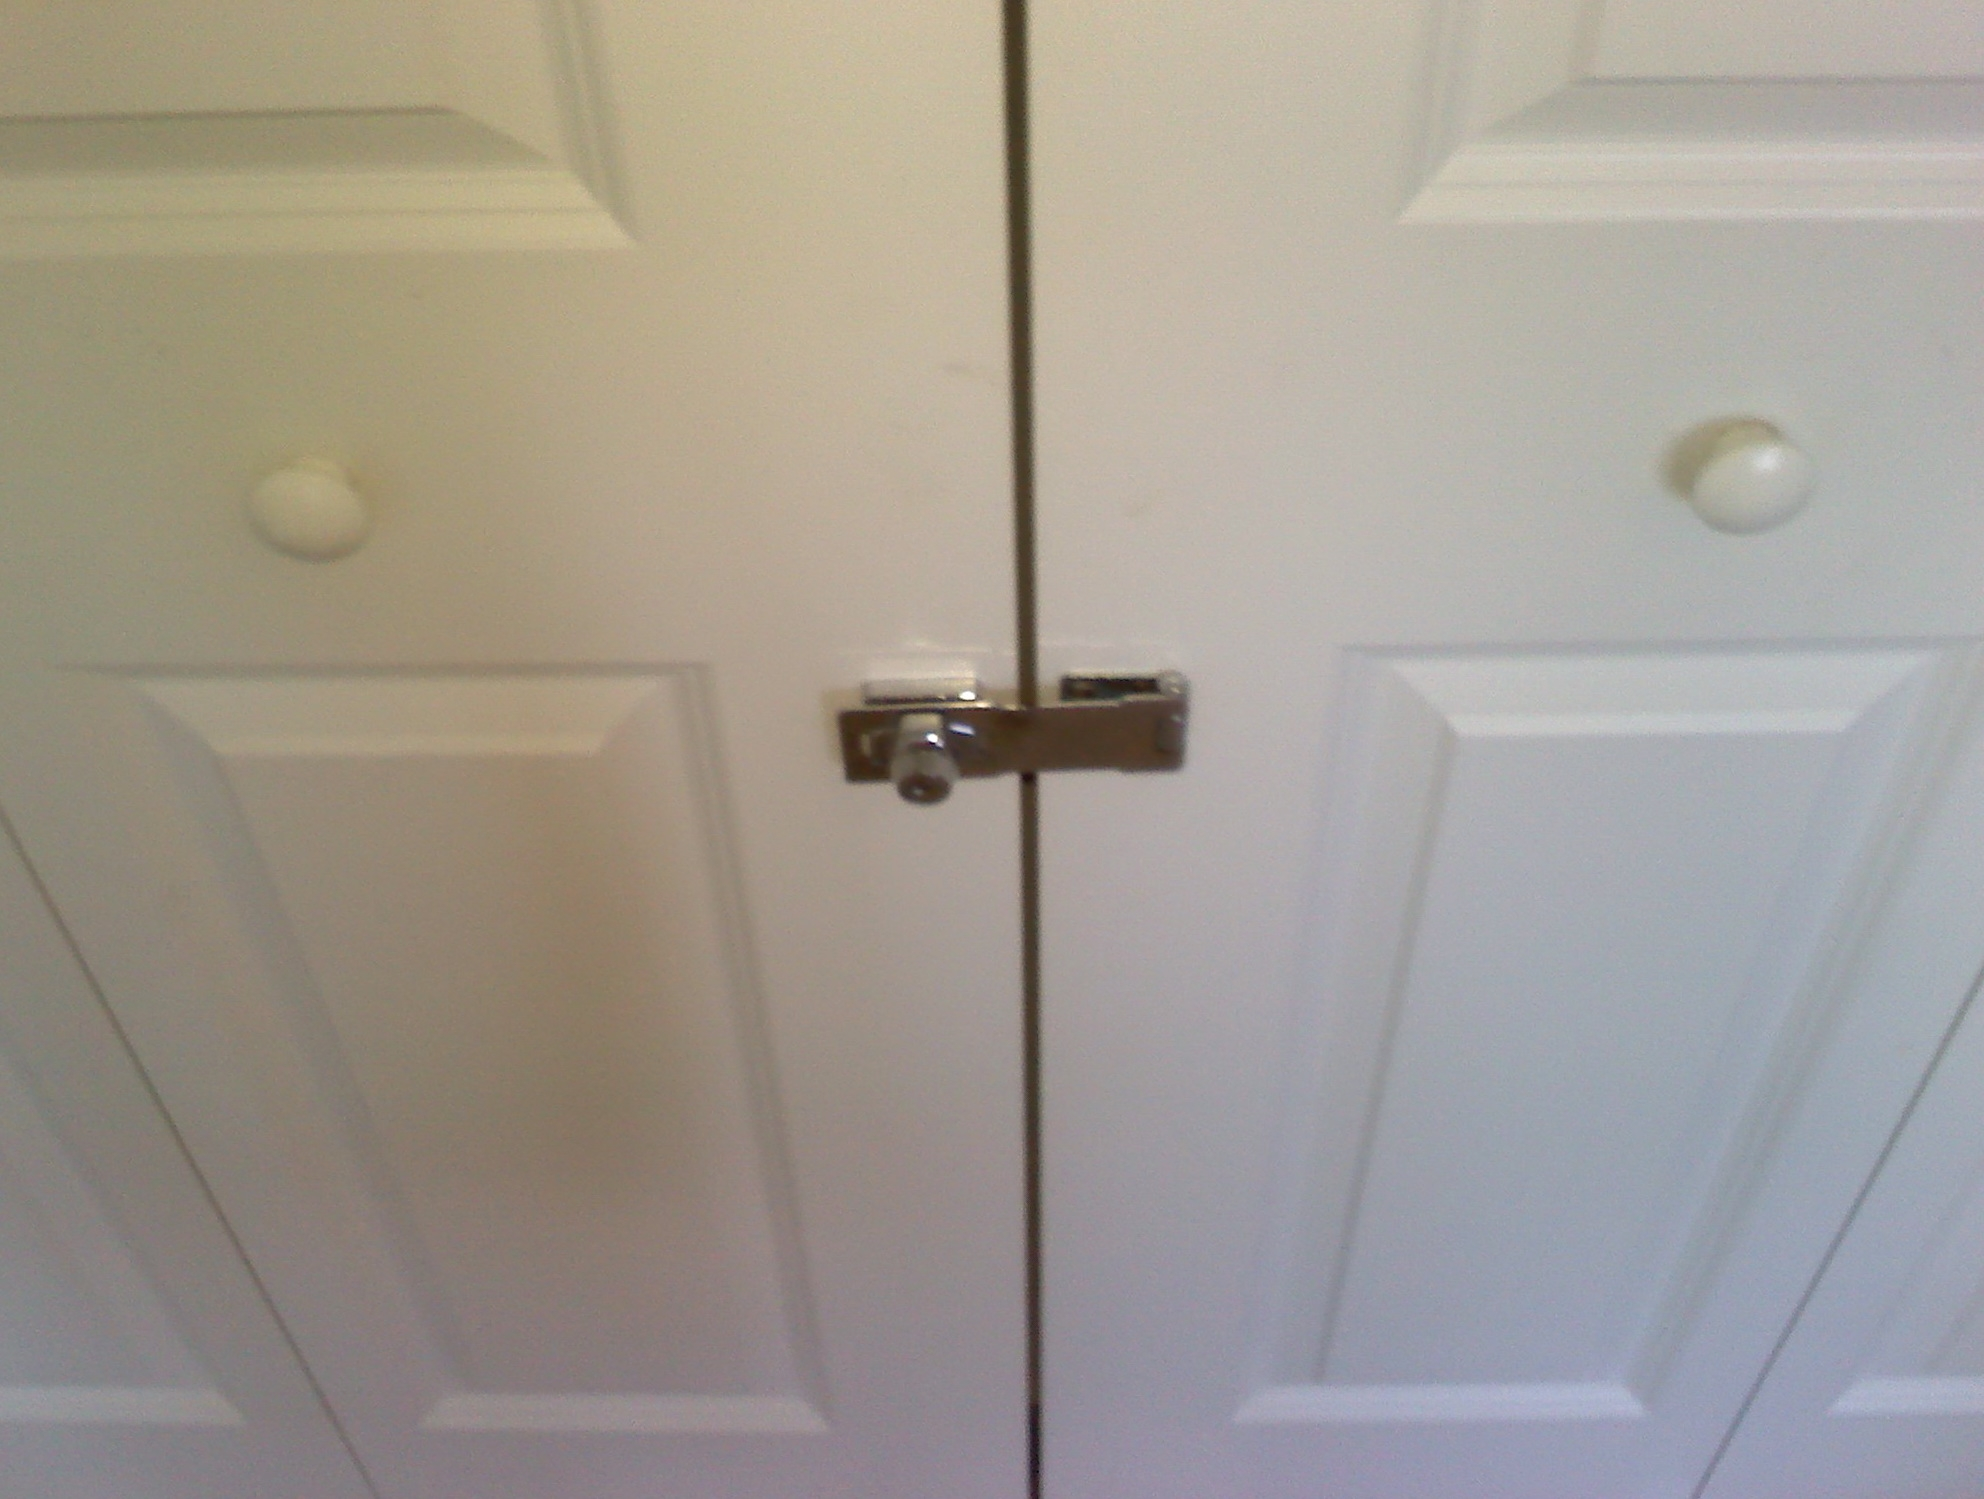 Closet Folding Door Lock